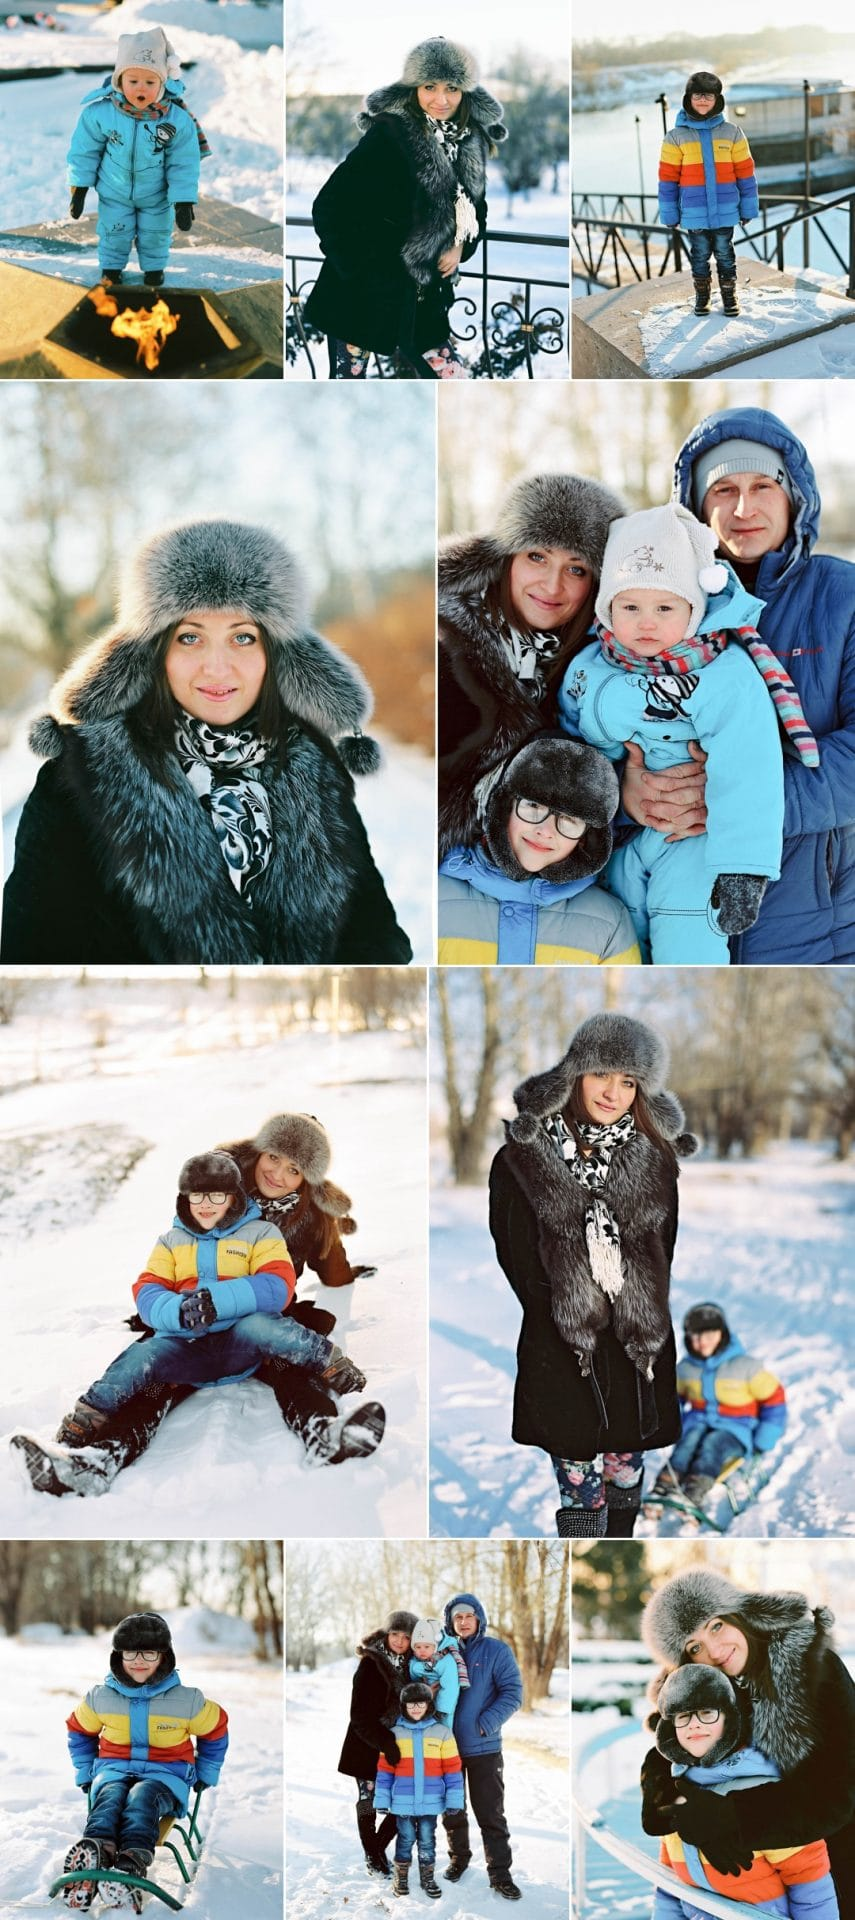 Happy family enjoying photography in snow.playing in snow, using sleigh